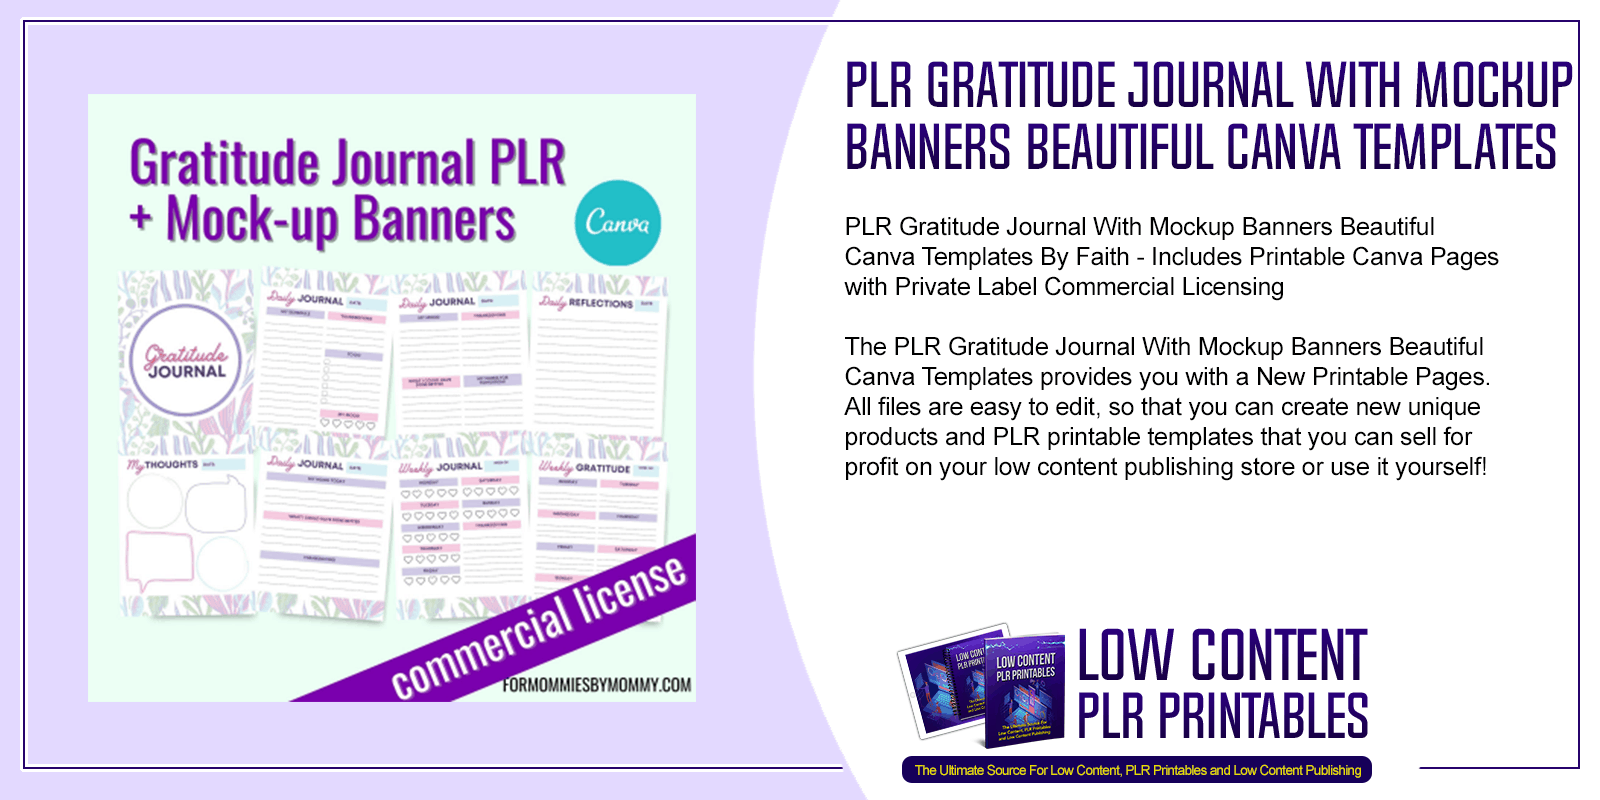 PLR Gratitude Journal With Mockup Banners Beautiful Canva Templates